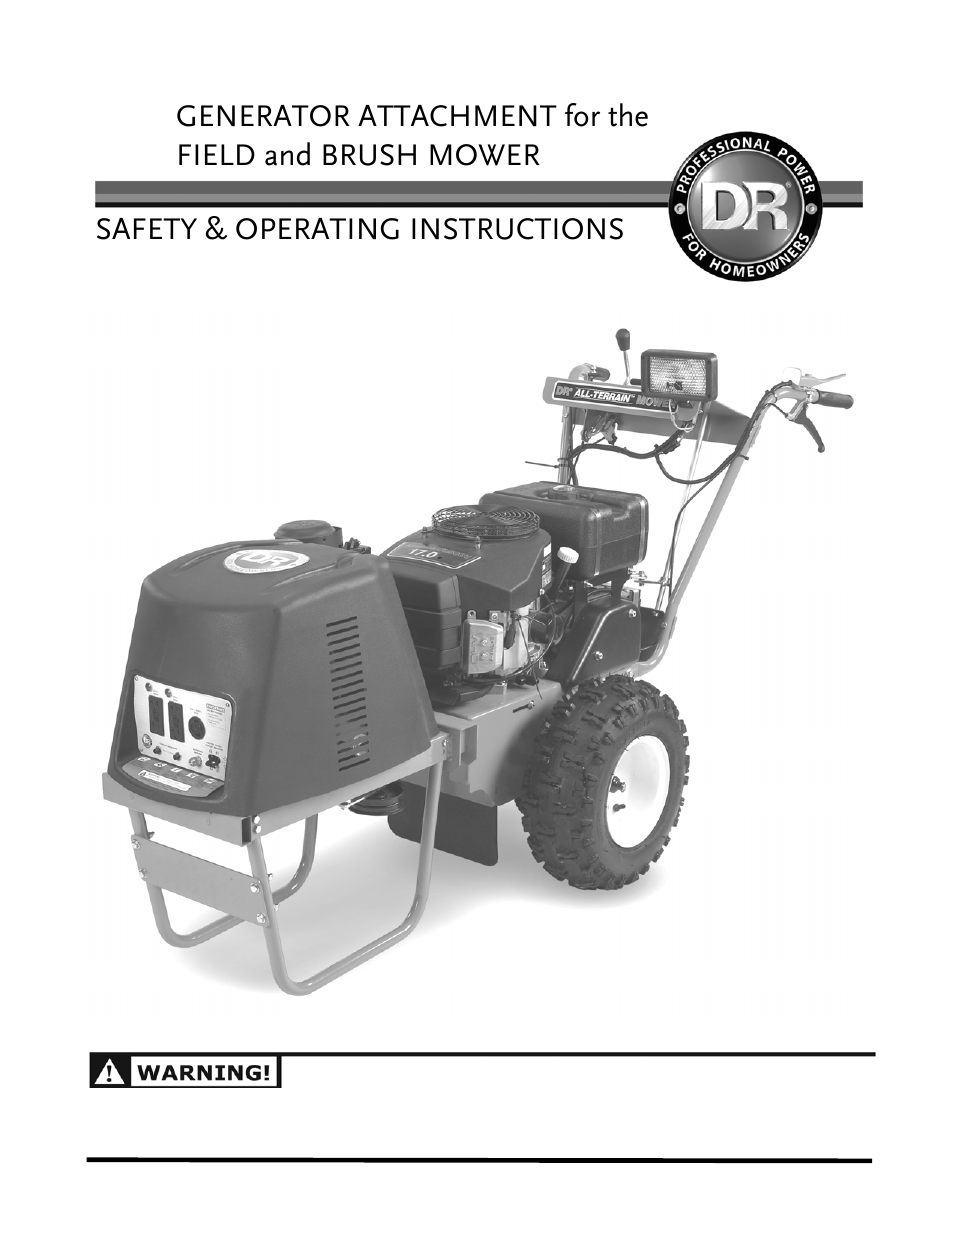 dr all terrain field and brush mower manual field. Black Bedroom Furniture Sets. Home Design Ideas